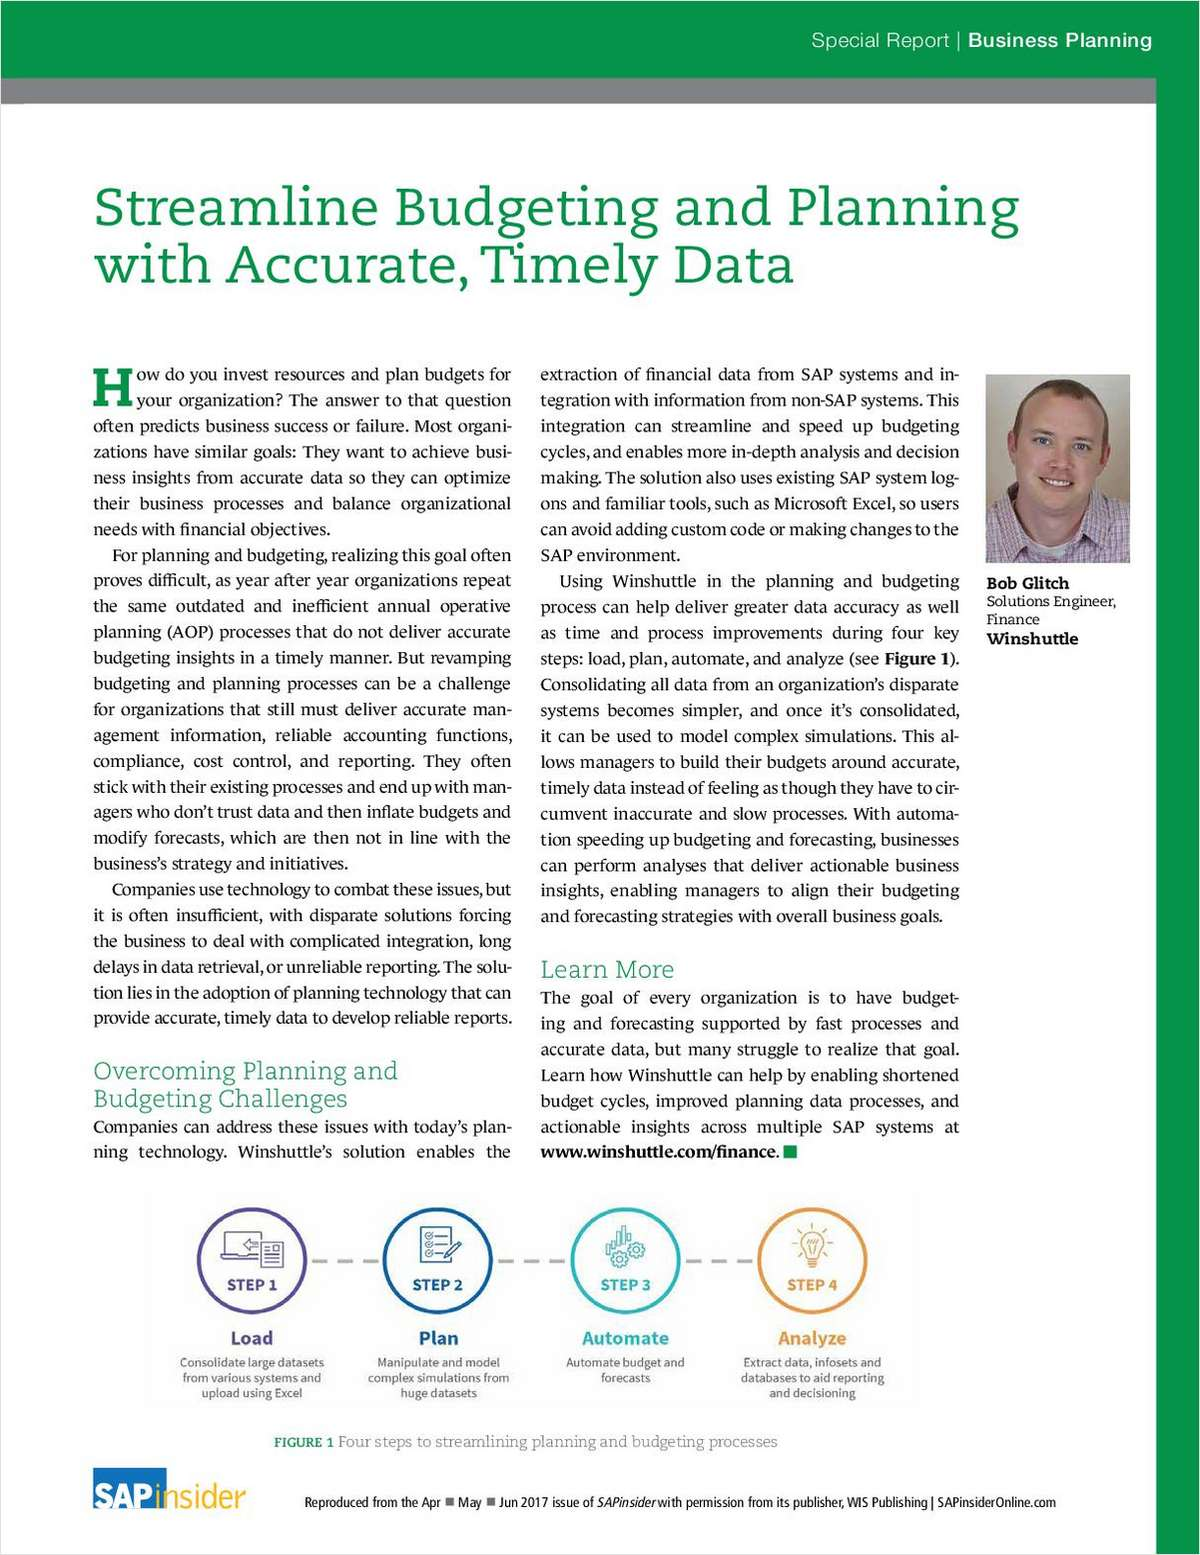 Streamline Budgeting and Planning with Accurate, Timely Data